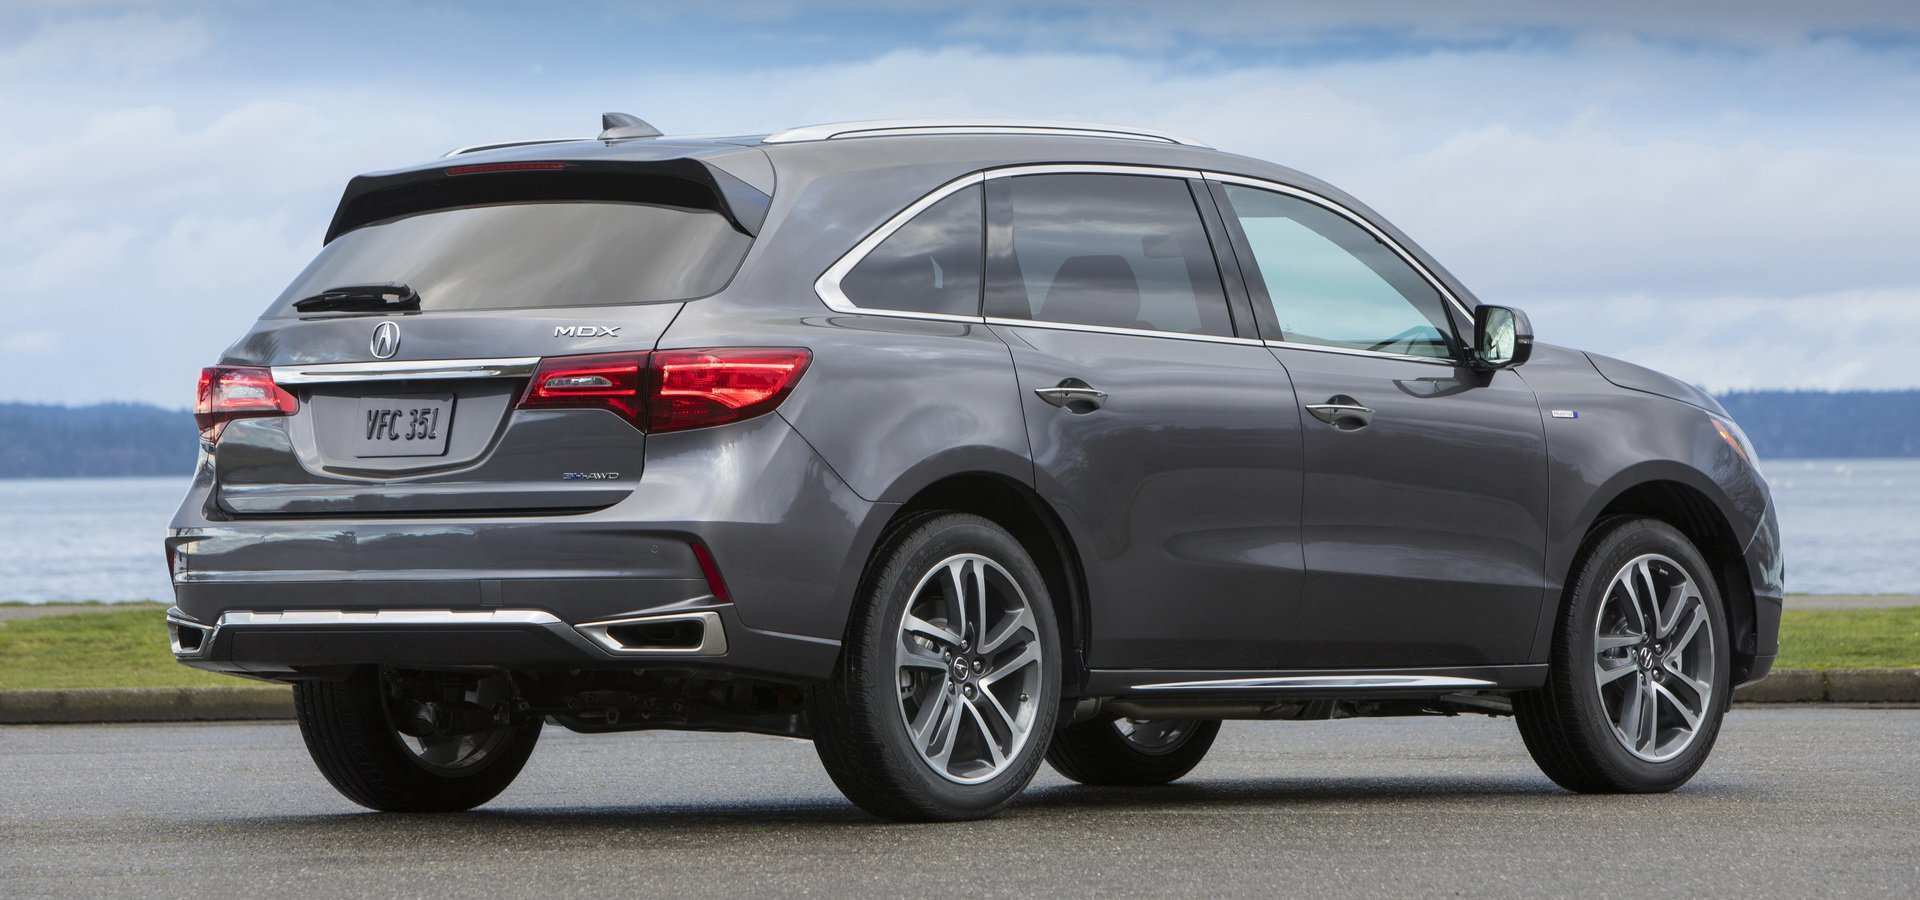 40 New New Acura Mdx 2020 Specs And Review